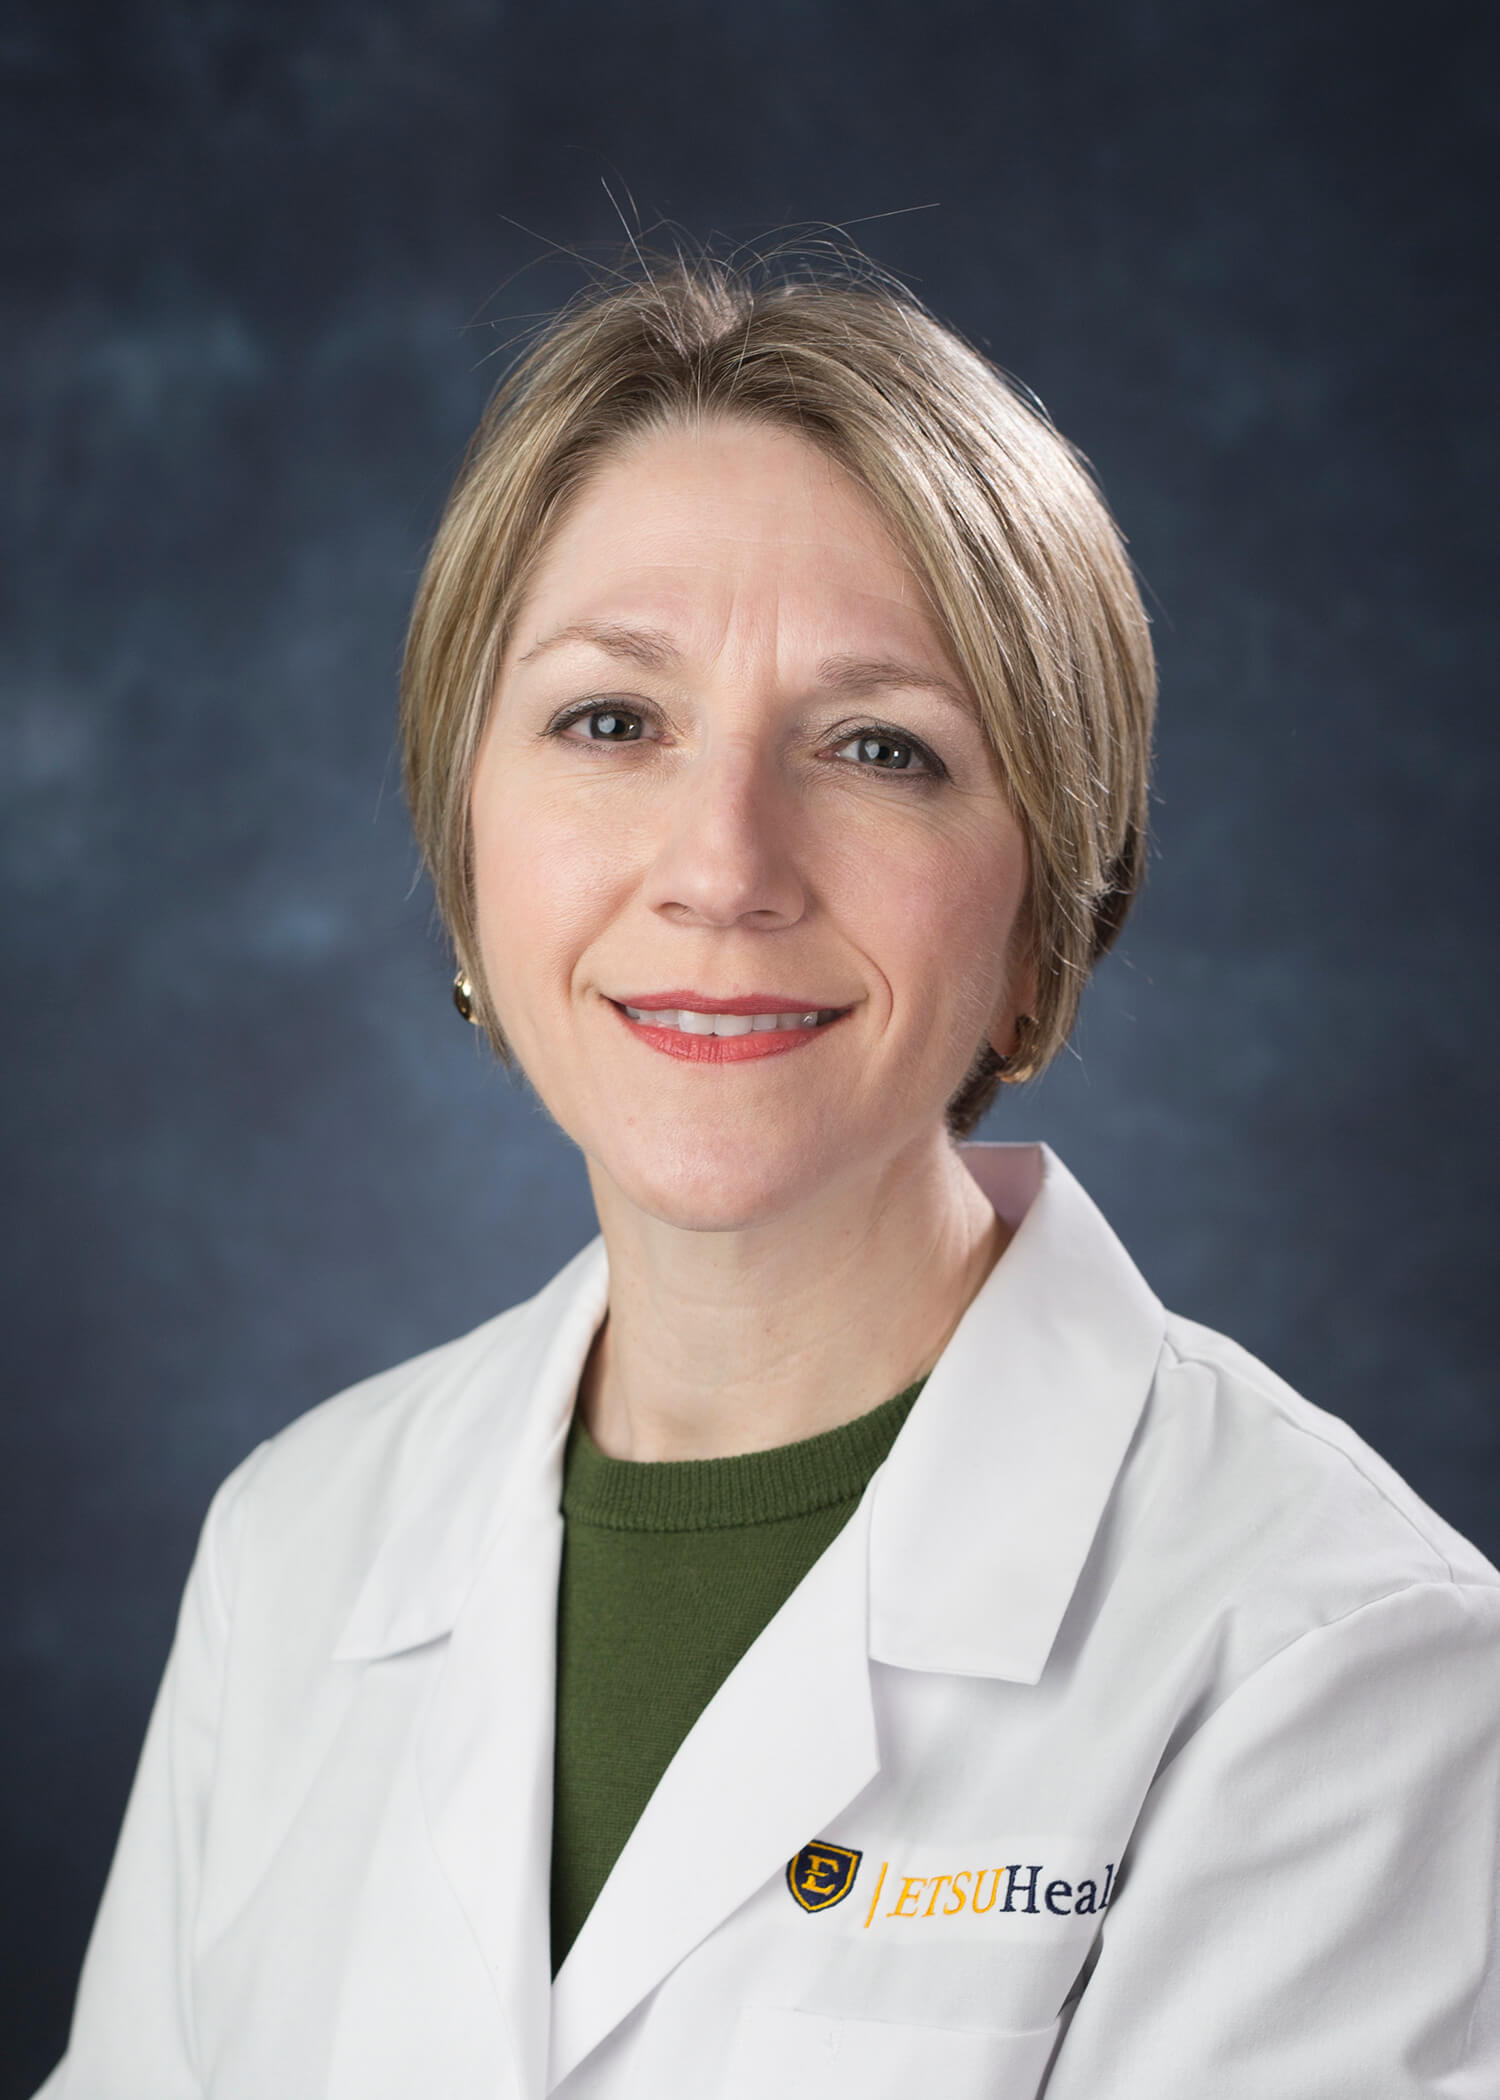 Photo of Suzanne Moore, M.D.